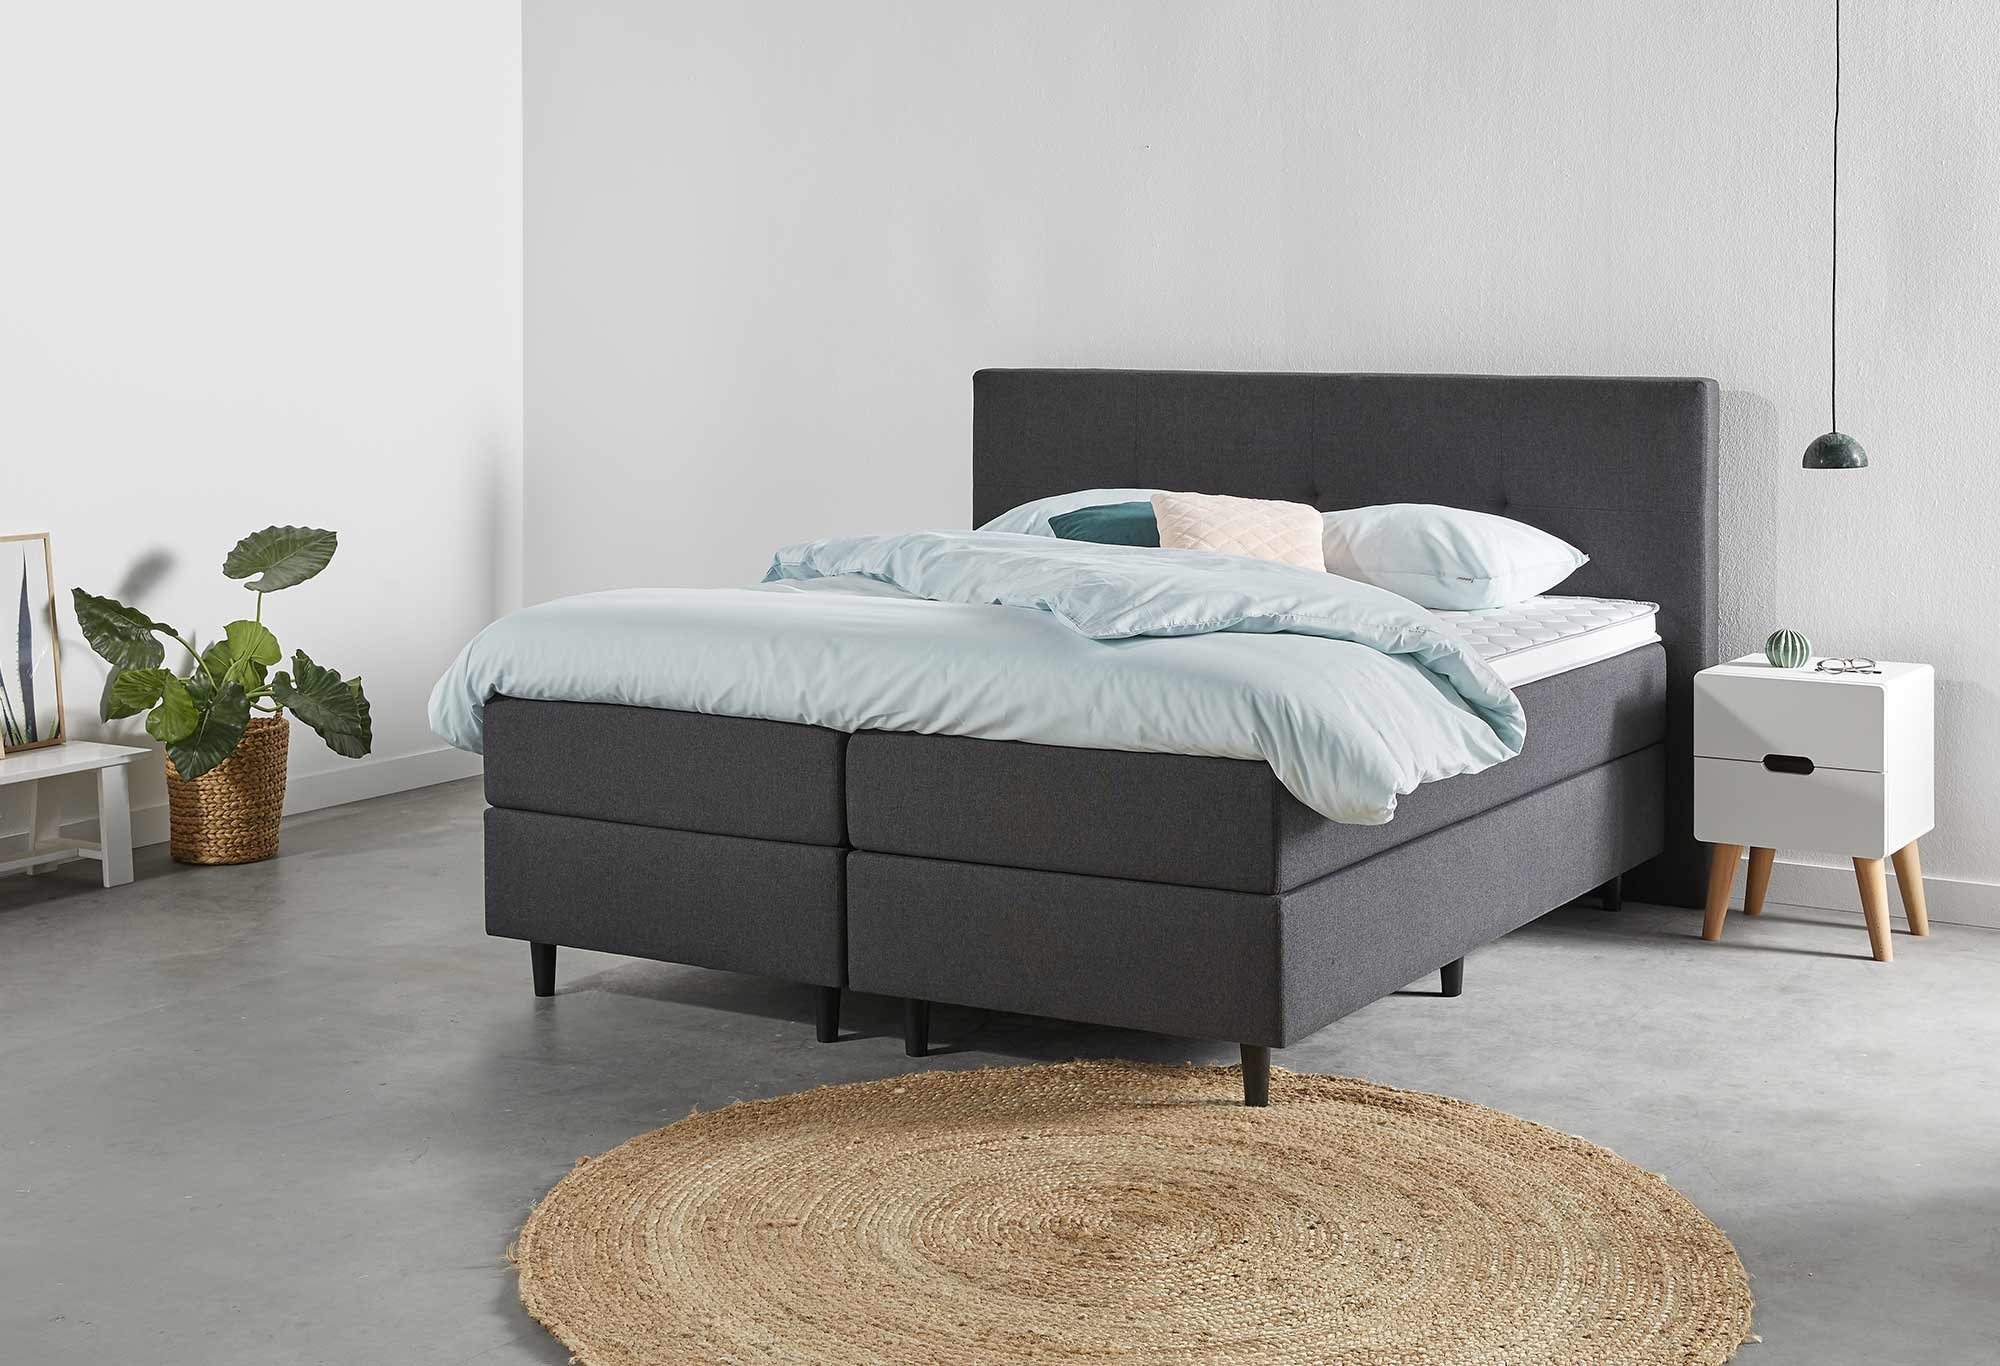 Boxspring Web-Only Spirit Deluxe | Swiss Sense